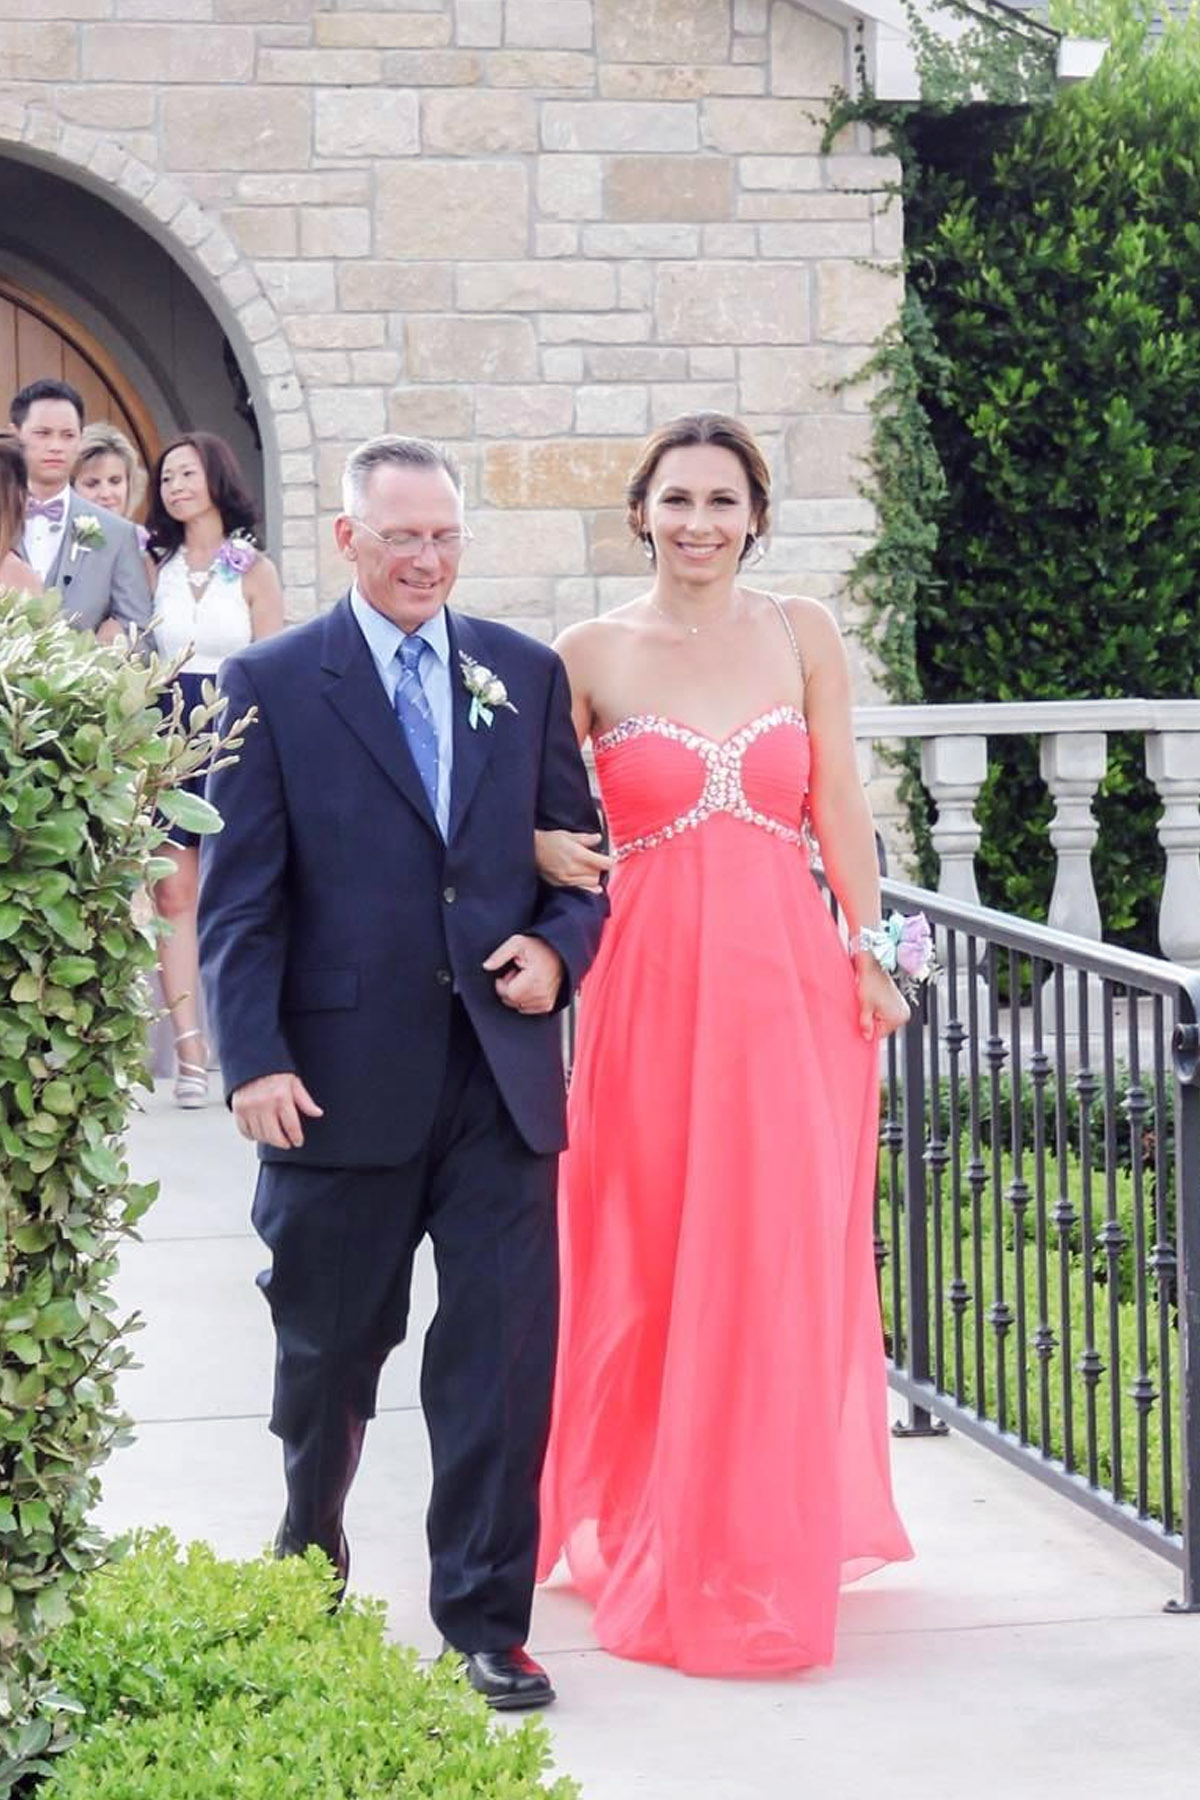 I and my husband John at our oldest son's wedding